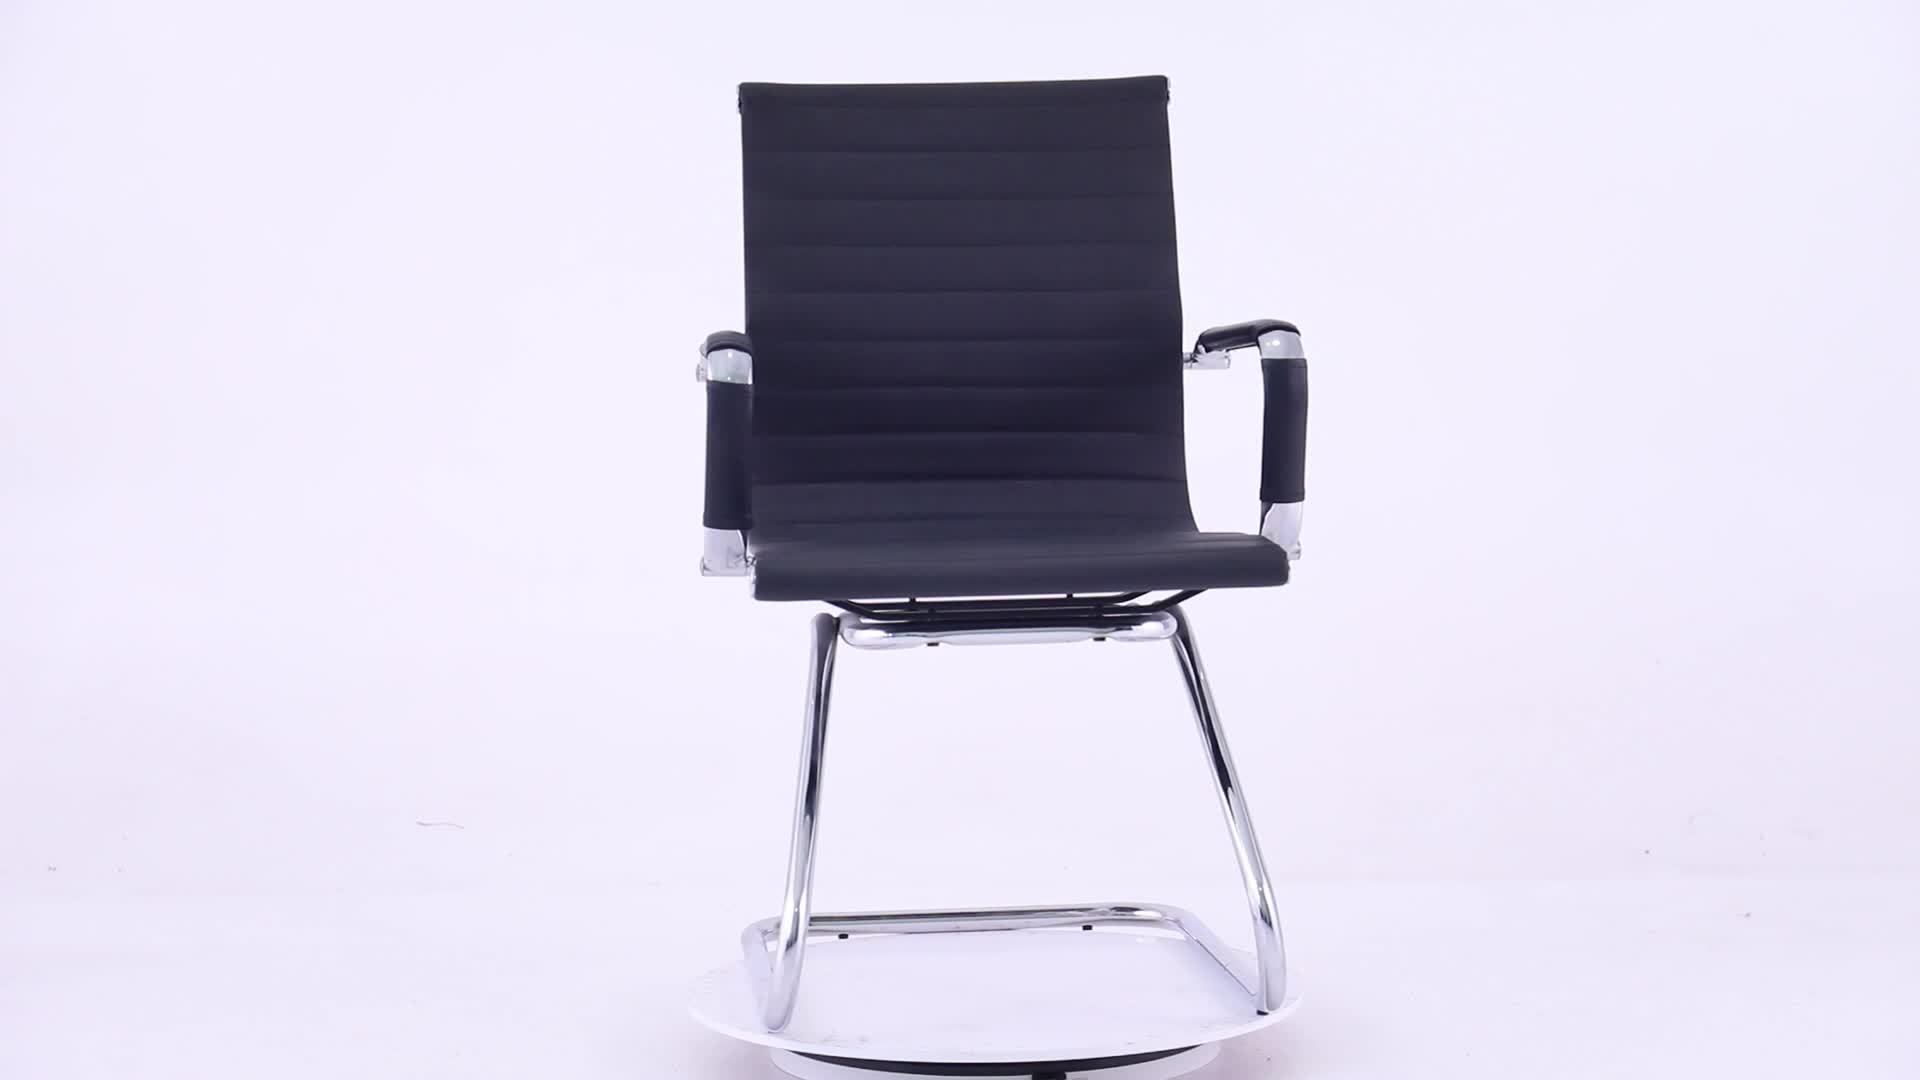 High Performance Full Mesh Back Conference Office Desk Chair Furniture Without Wheels Buy Lift Computer Meeting Guest Ergonomic Desk Chair Executive